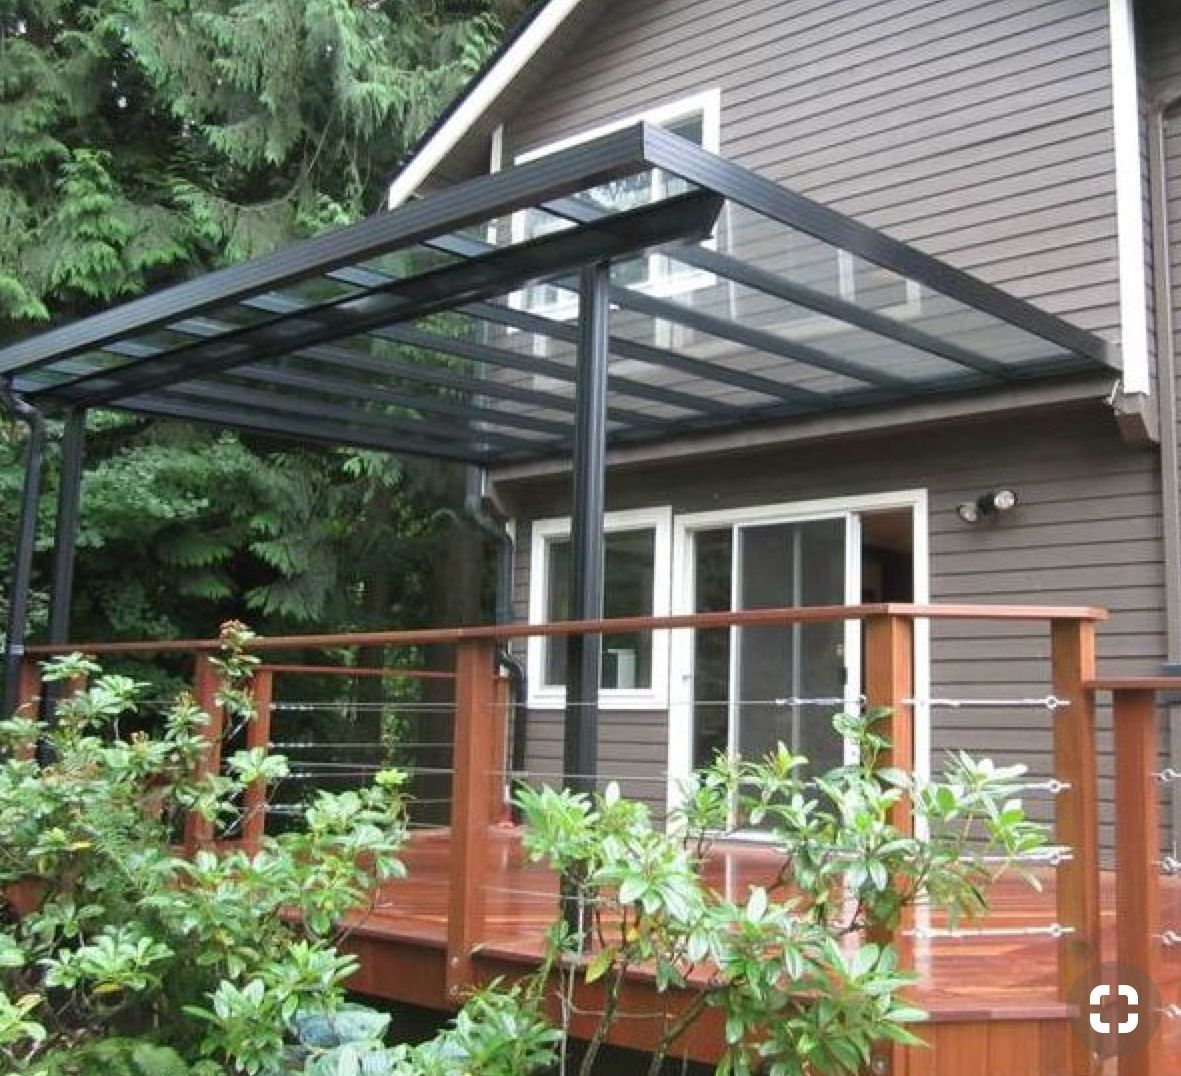 Pin By Anchana Ploypraw On Home Garden Deck Awnings Deck With Pergola Outdoor Awnings